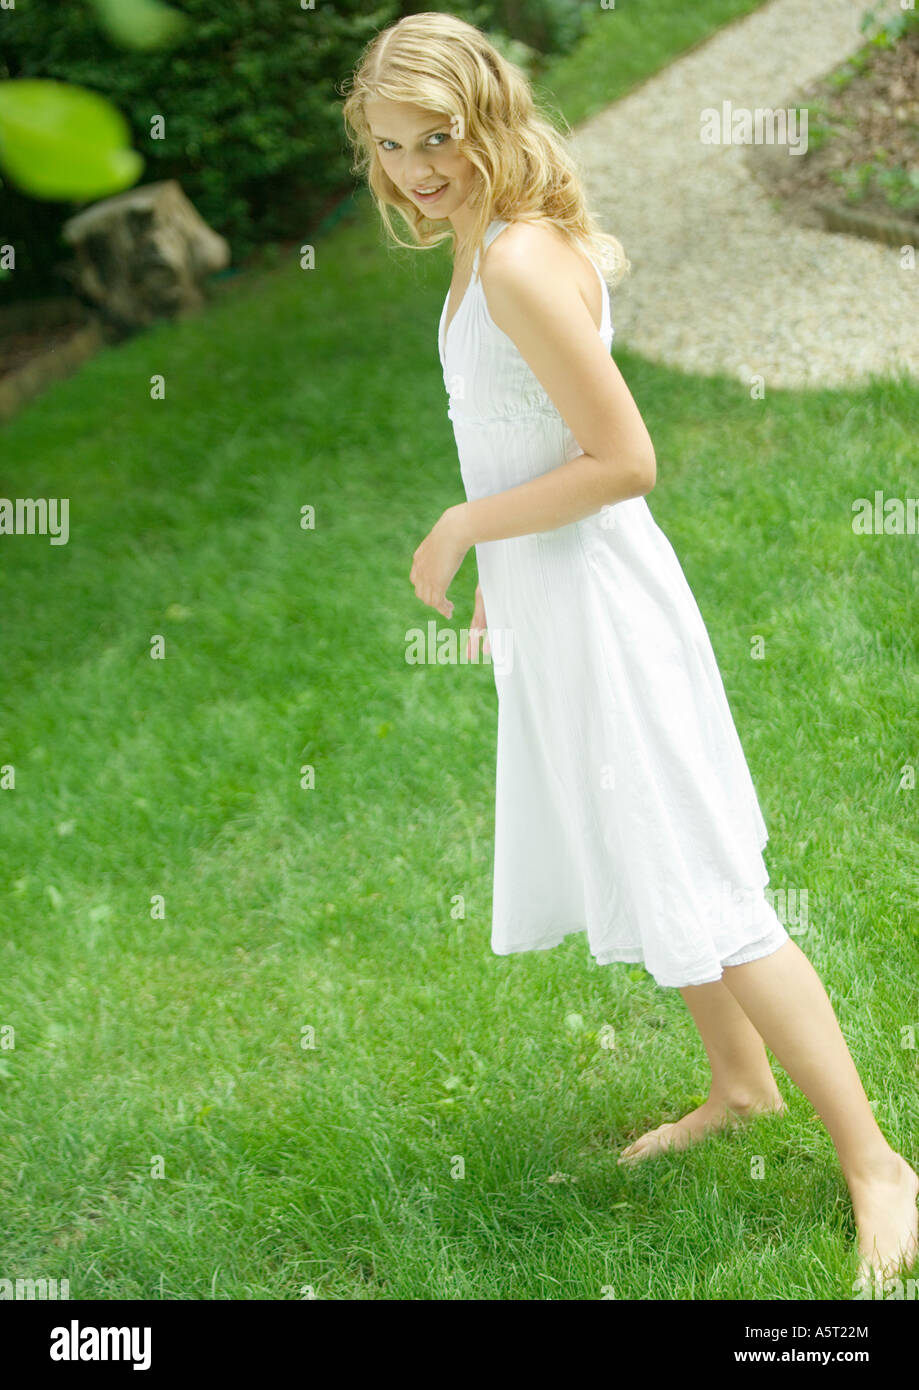 Young woman standing in yard, wearing sundress, smiling at camera - Stock Image